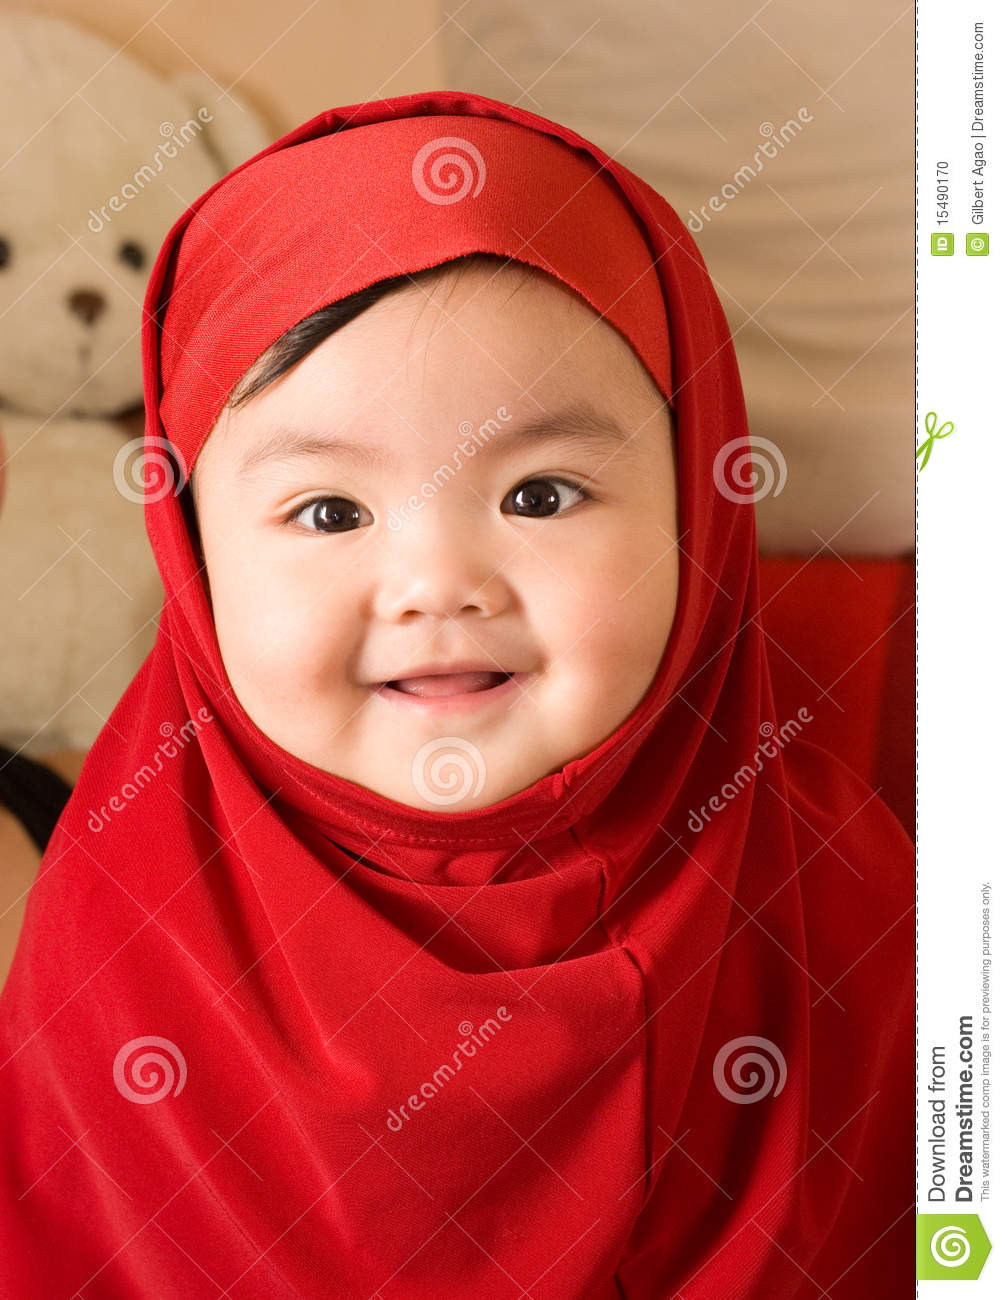 baby girl stock photo. image of expression, dress, baby - 15490170